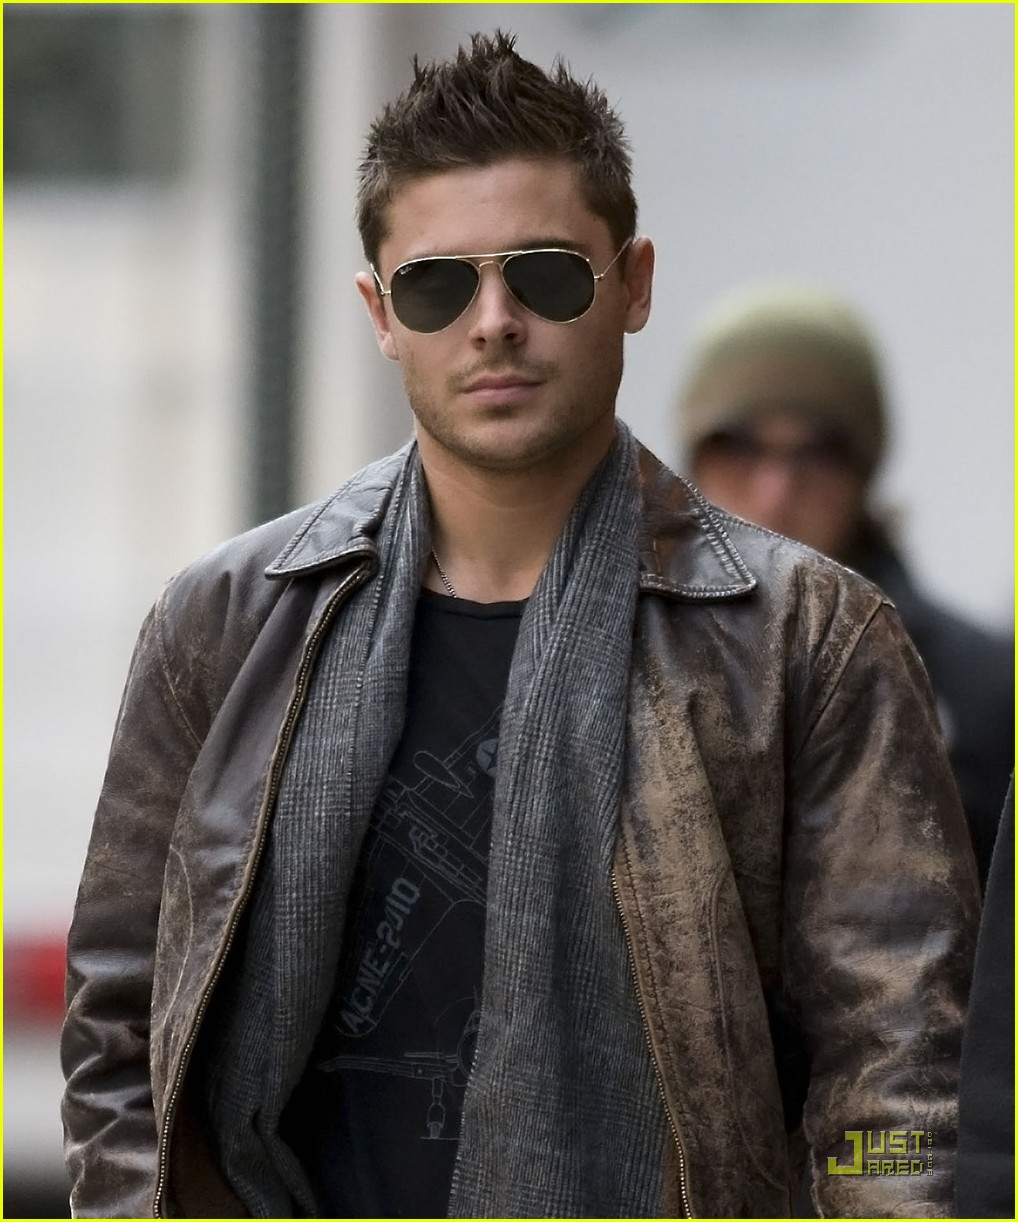 Zac Efron Wearing Leather Jacket On The Set Of New Years